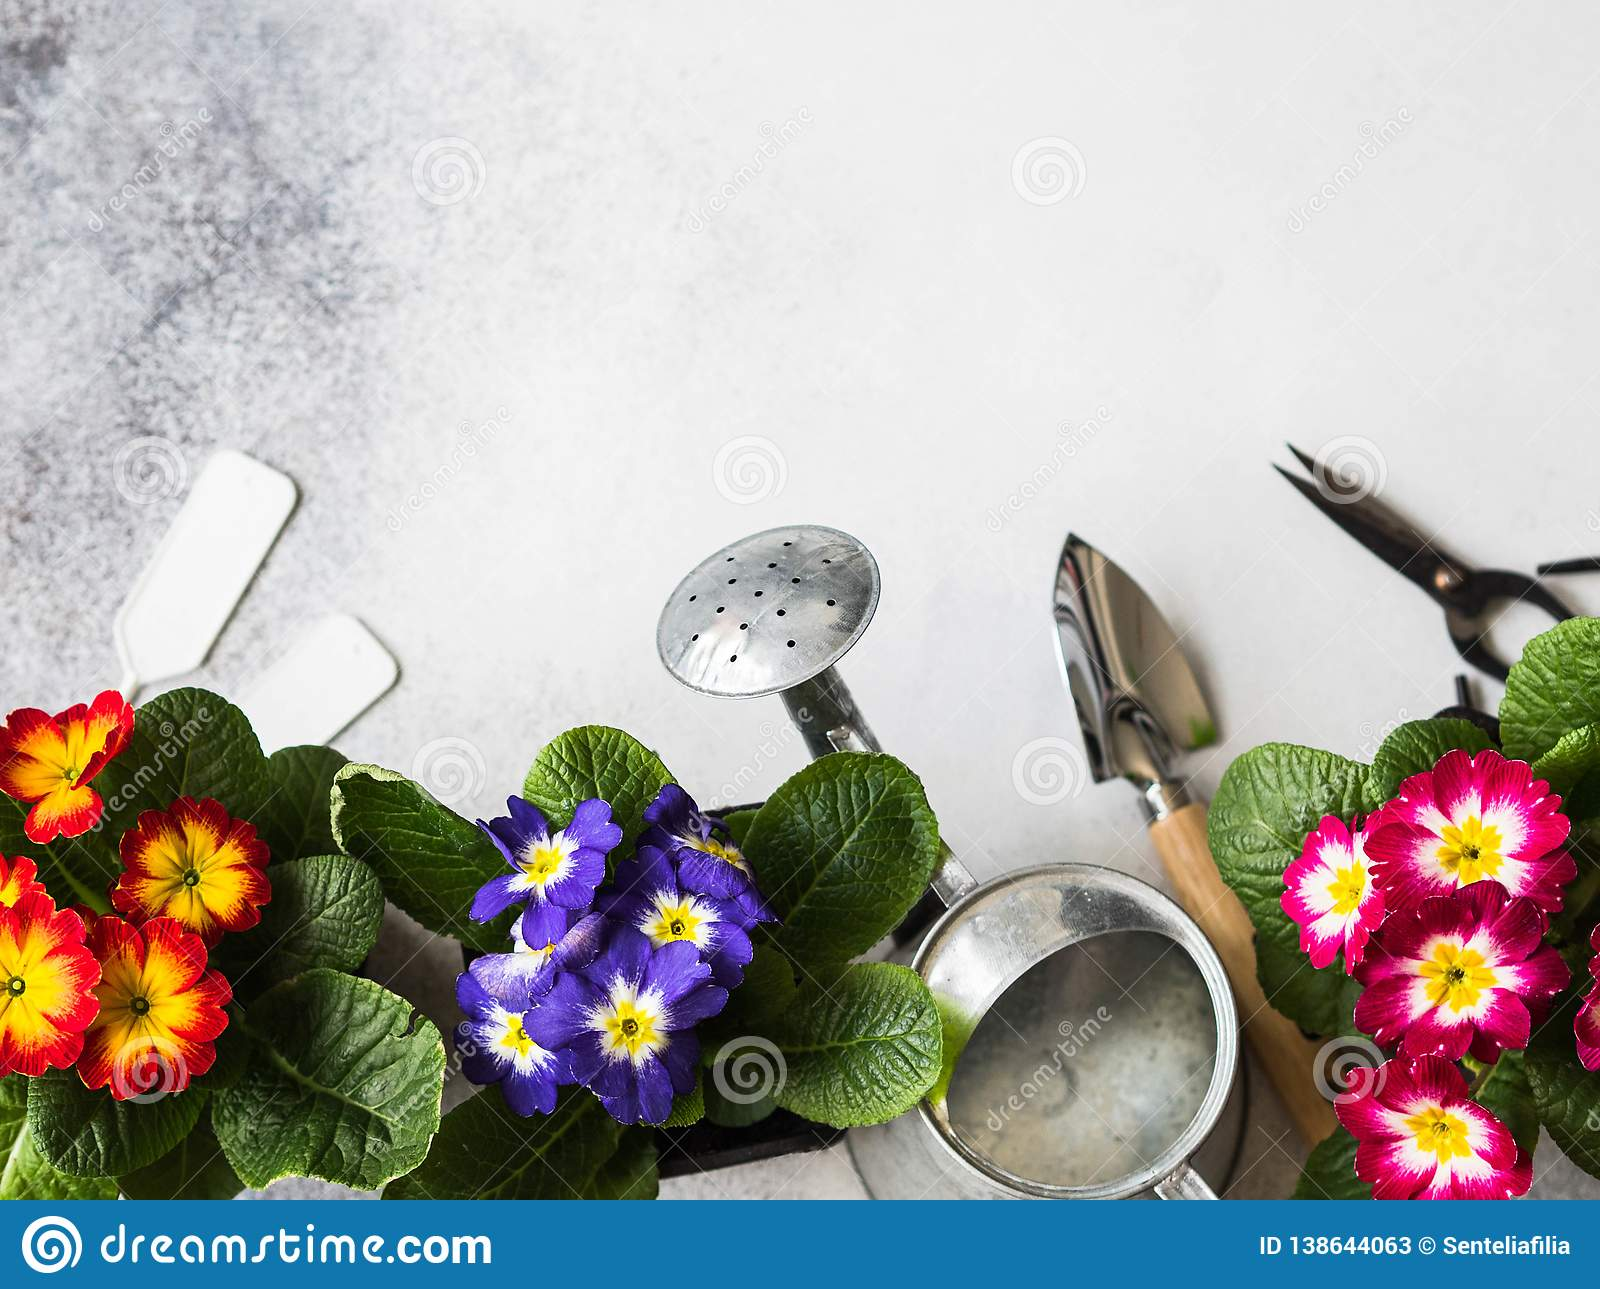 Seedlings of flowers multicolored primroses and various garden tools on a gray background. Garden concept. Top view. Copy space